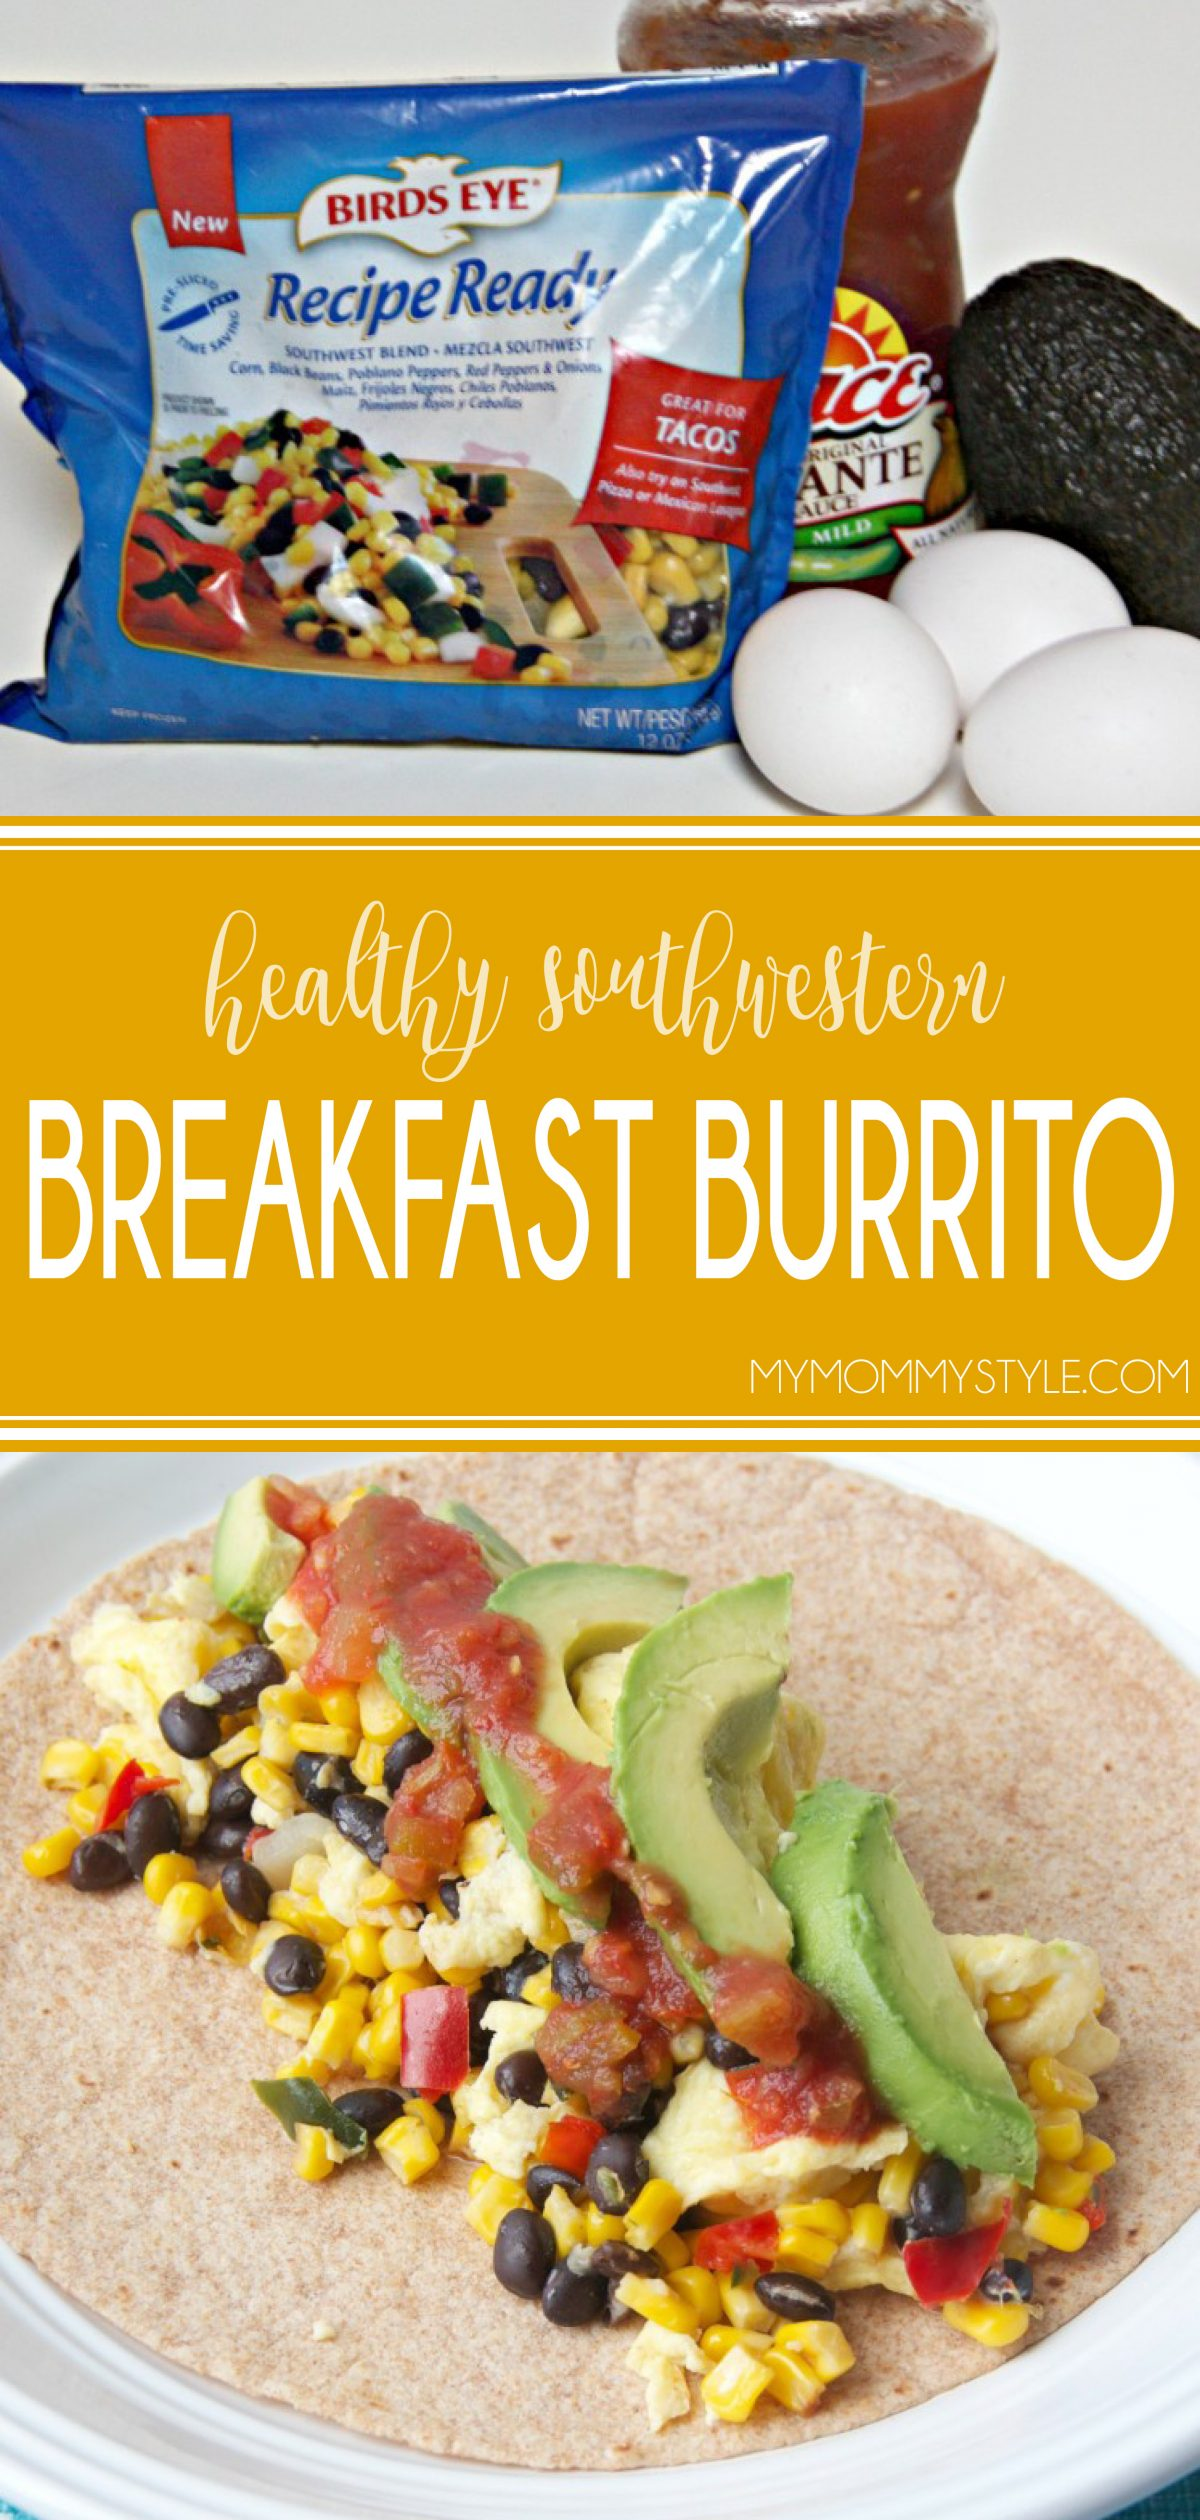 Making breakfast burritos in the morning is an easy (and relatively quick) way to get some extra veggies, protein, and fiber in your diet. You can also make a batch of them and store them in the freezer for a quick meal later on! via @mymommystyle